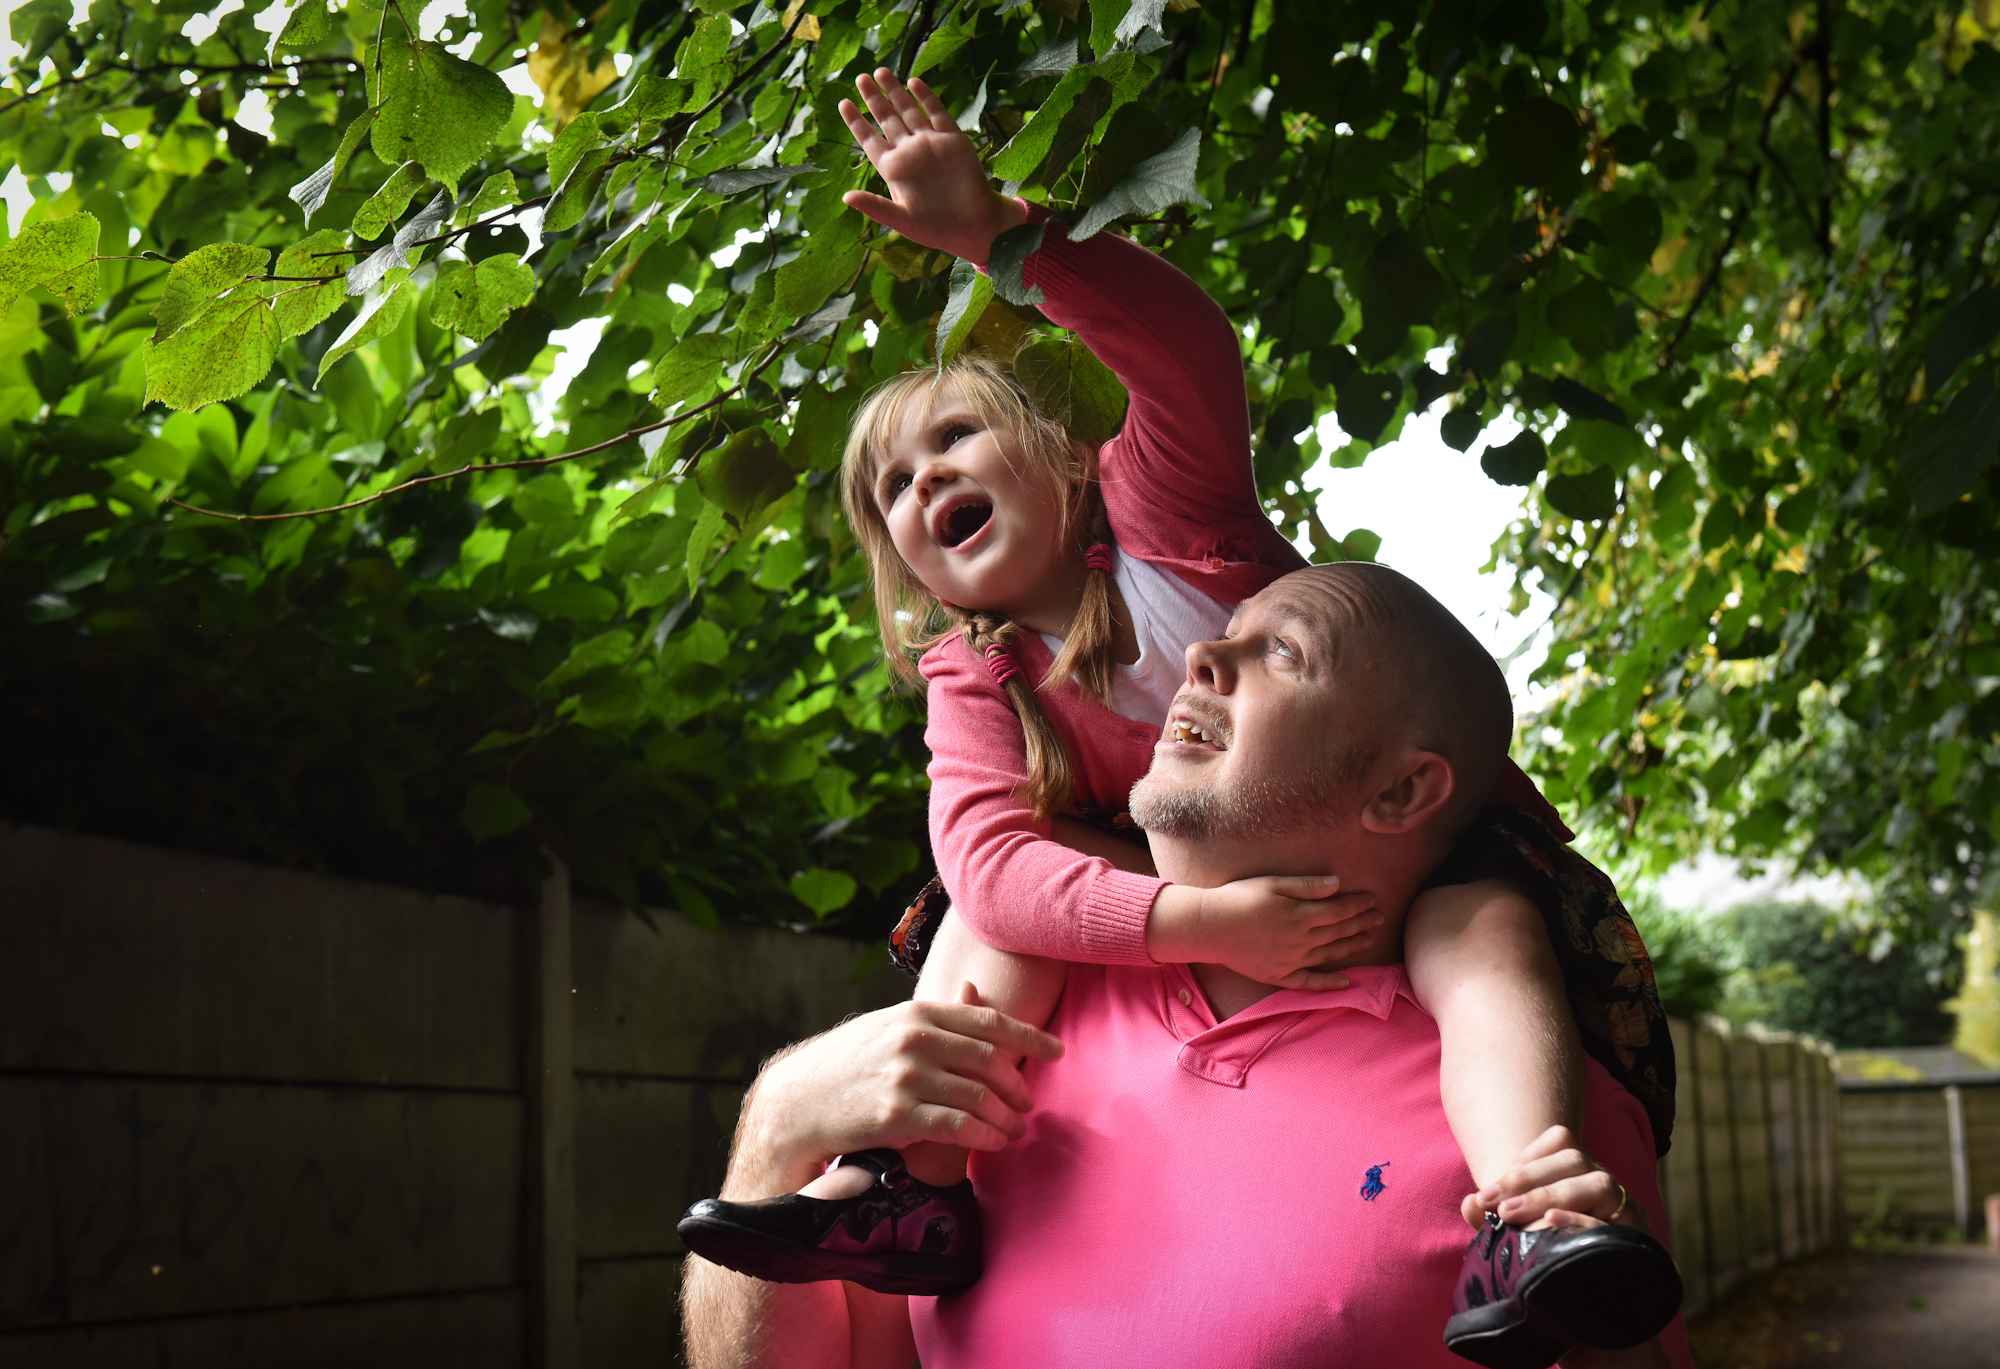 Dad and daughter portrait under tree